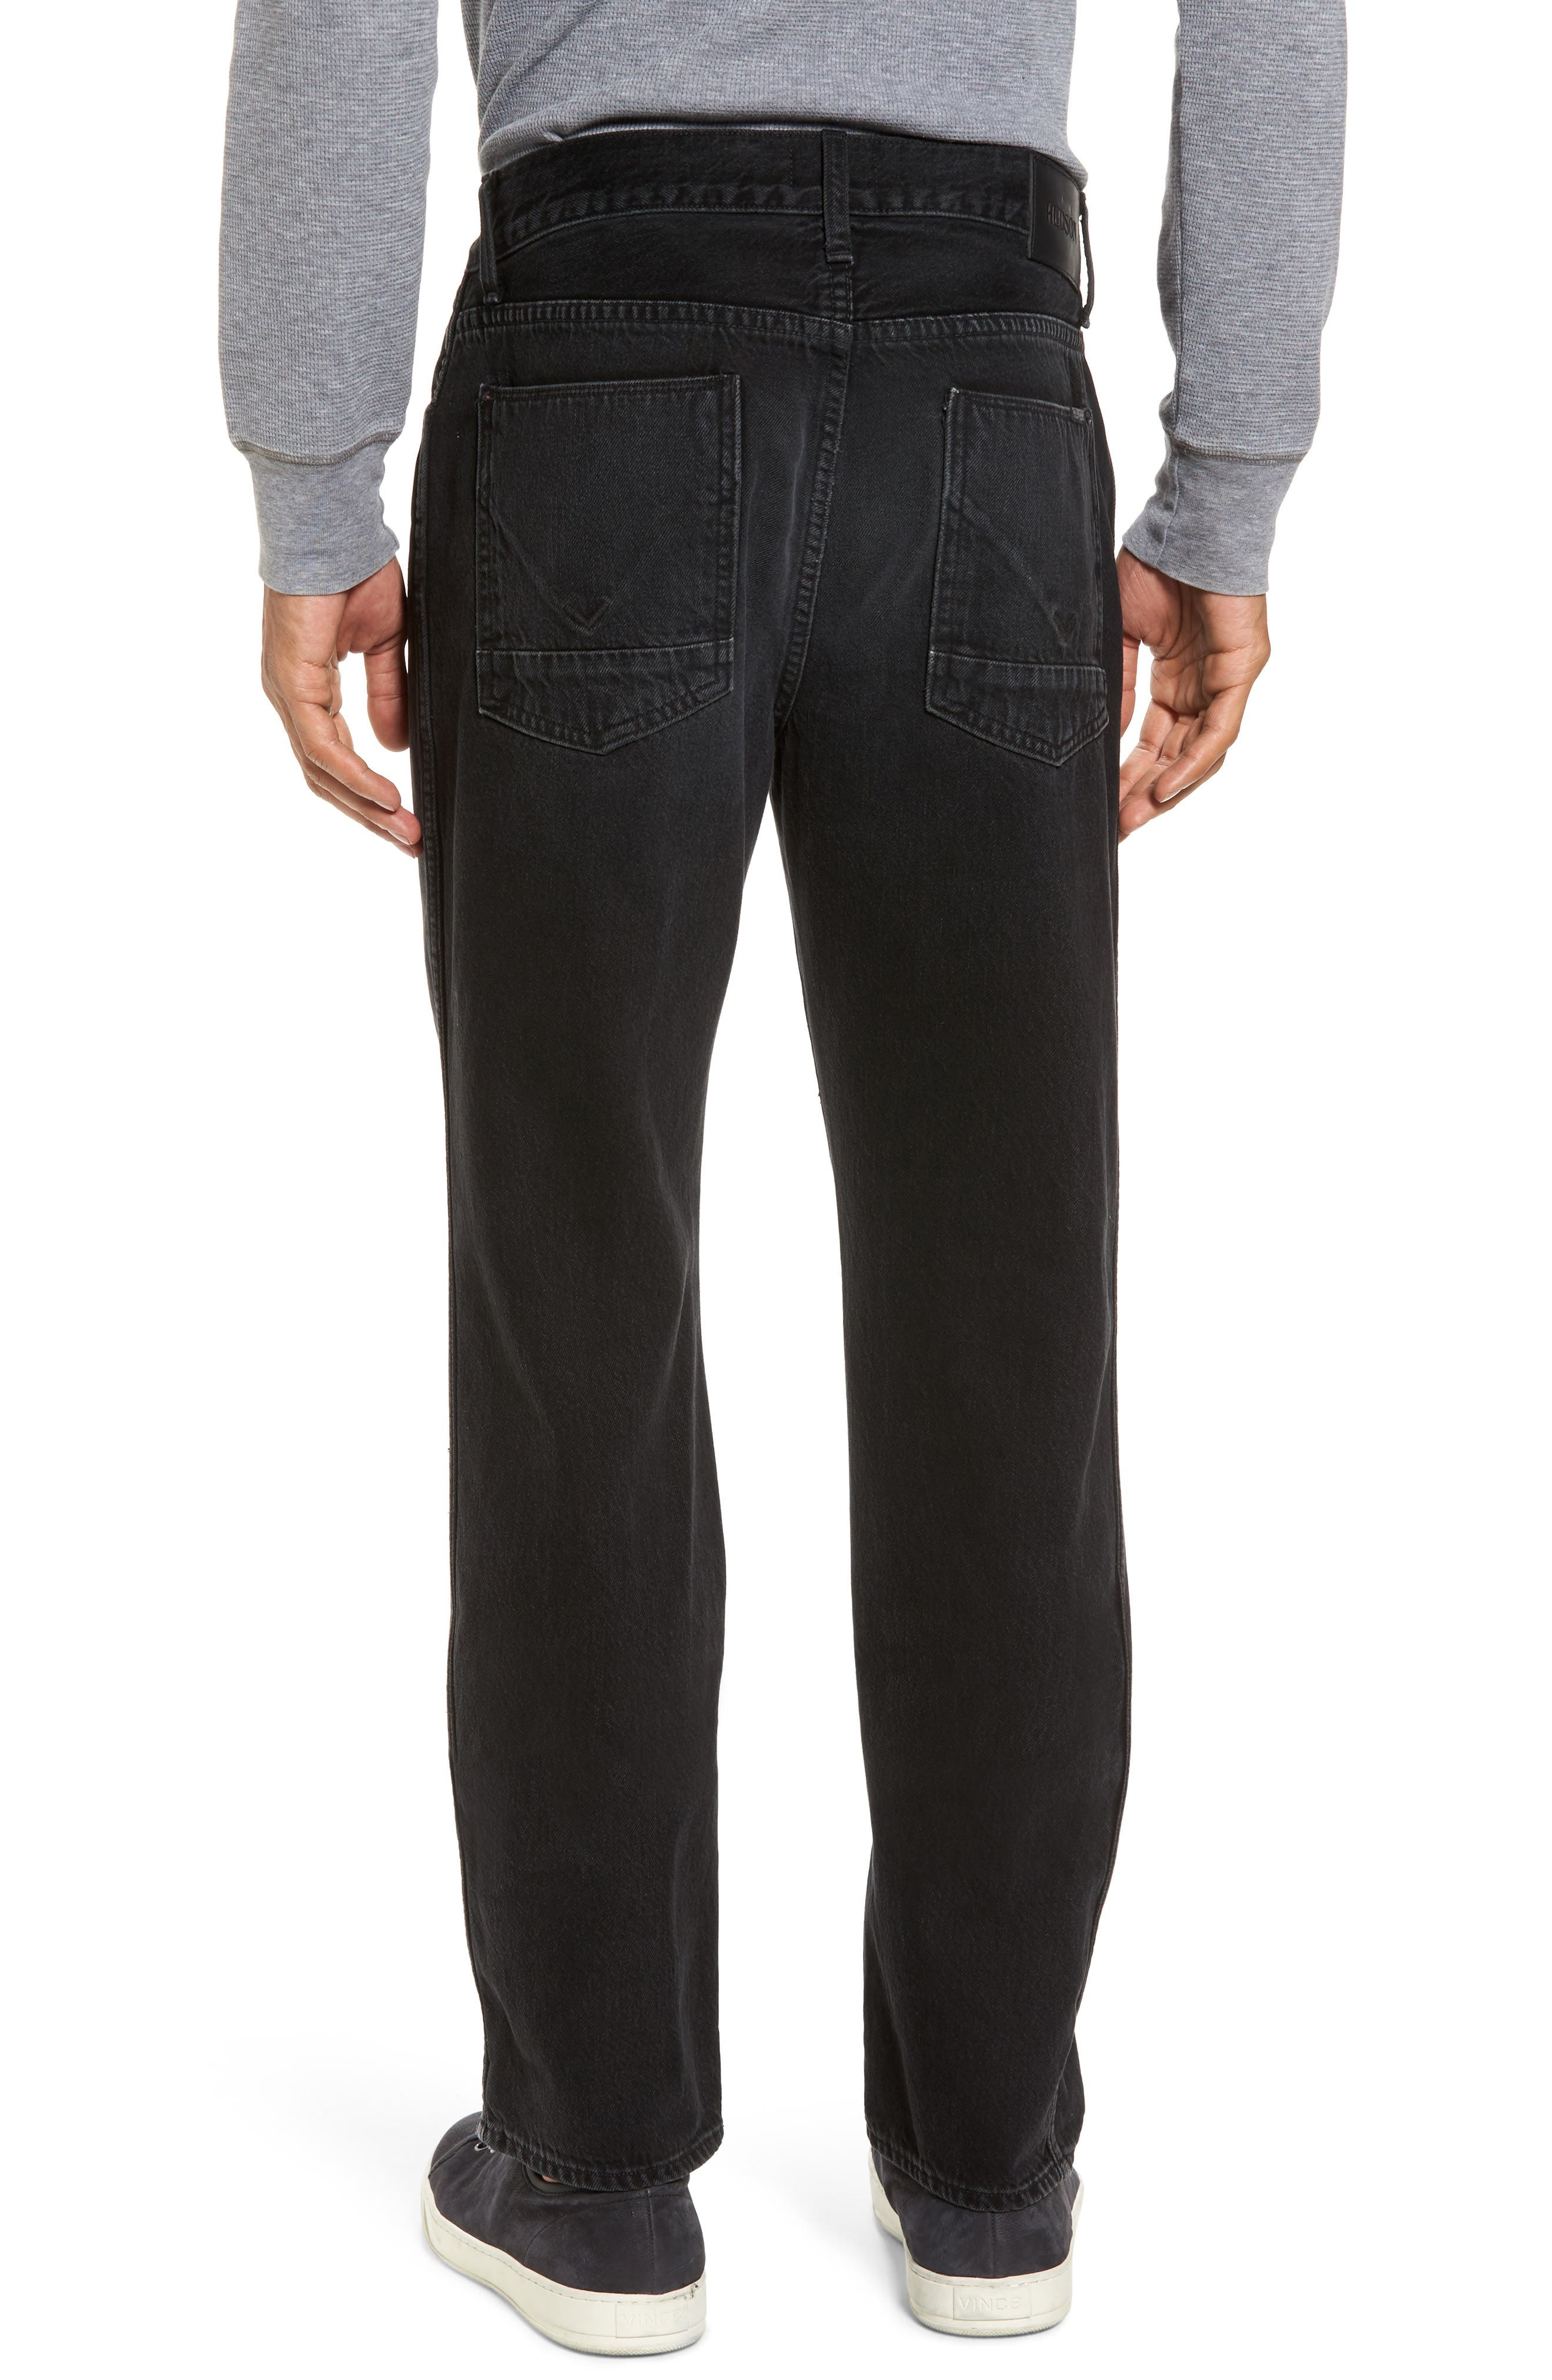 Dixon Straight Fit Jeans,                             Alternate thumbnail 2, color,                             Mean Street